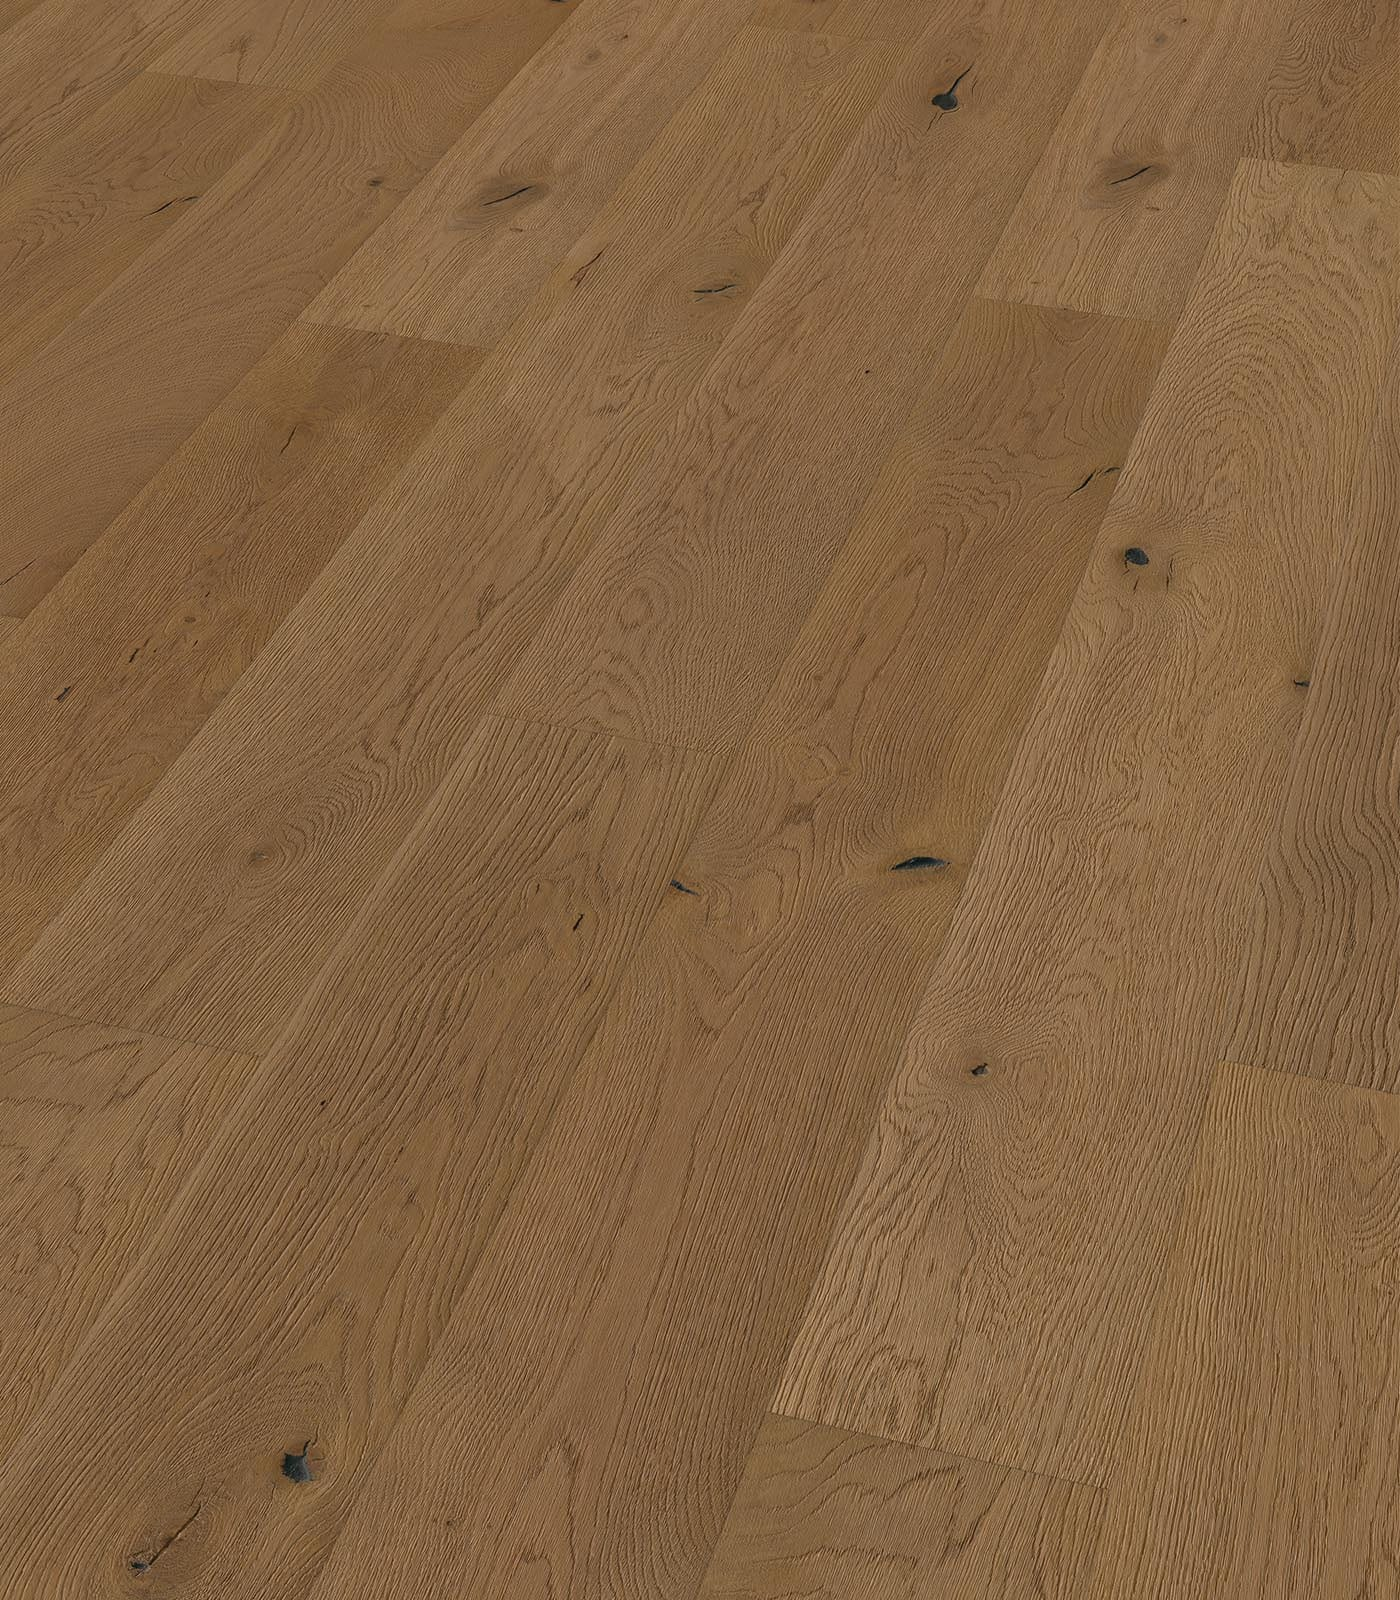 Modena-Heritage Collection-European oak flooring-angle